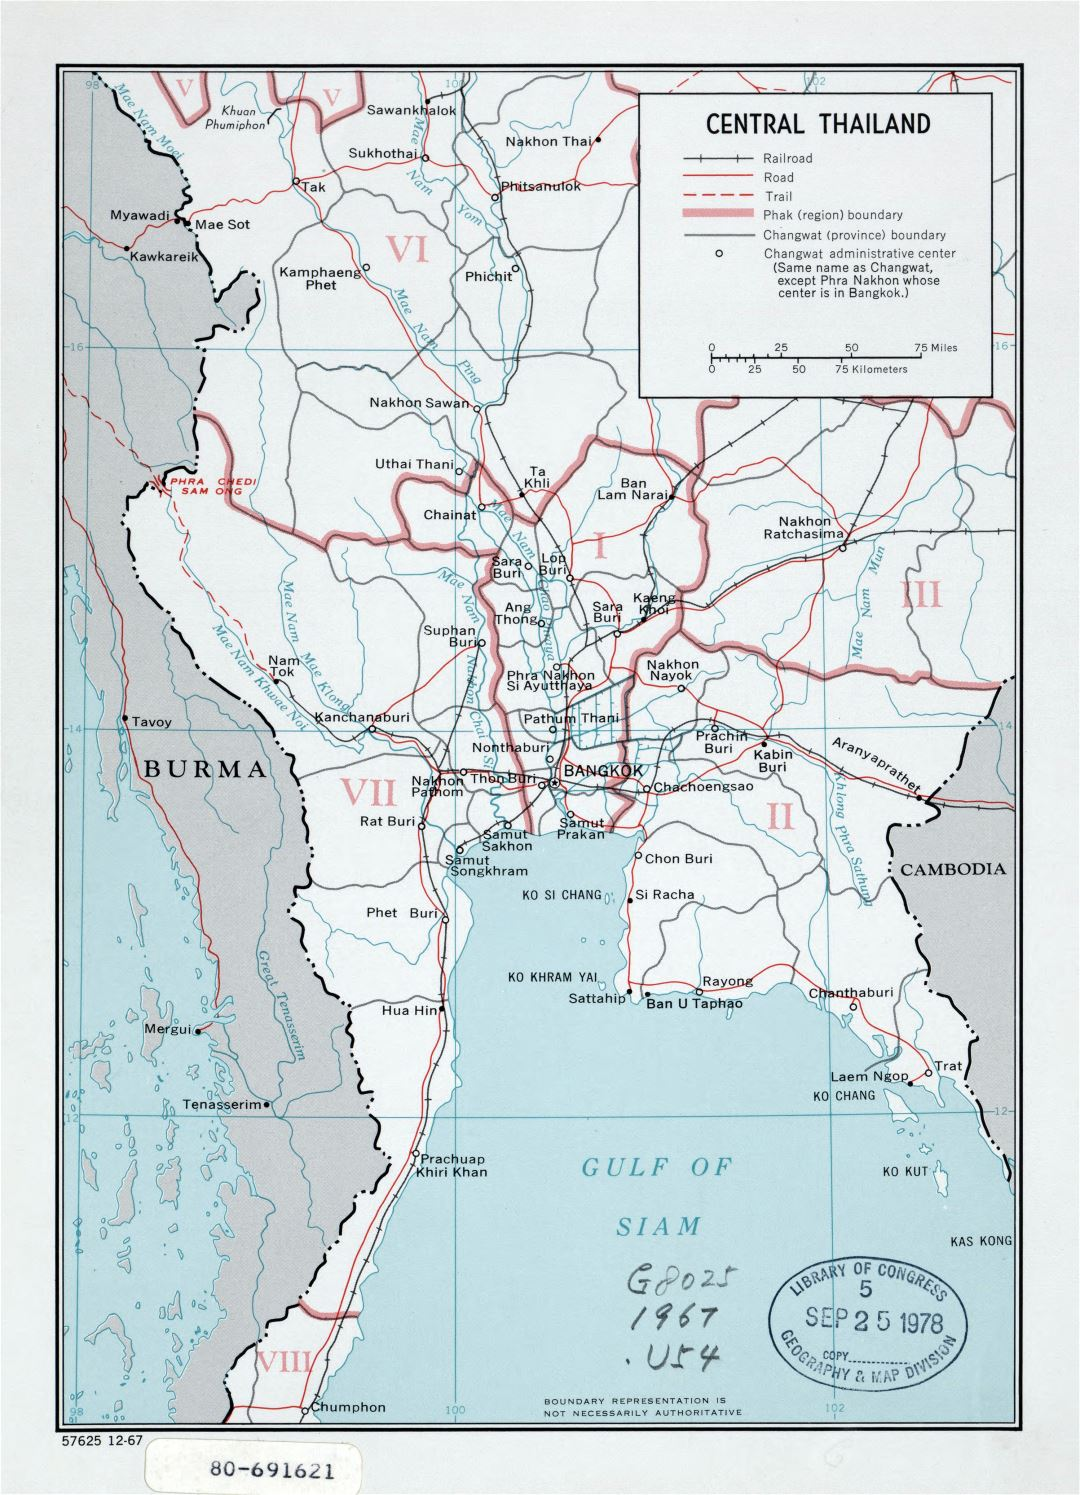 Large detailed political and administrative map of Central Thailand with roads, railroads and major cities - 1967